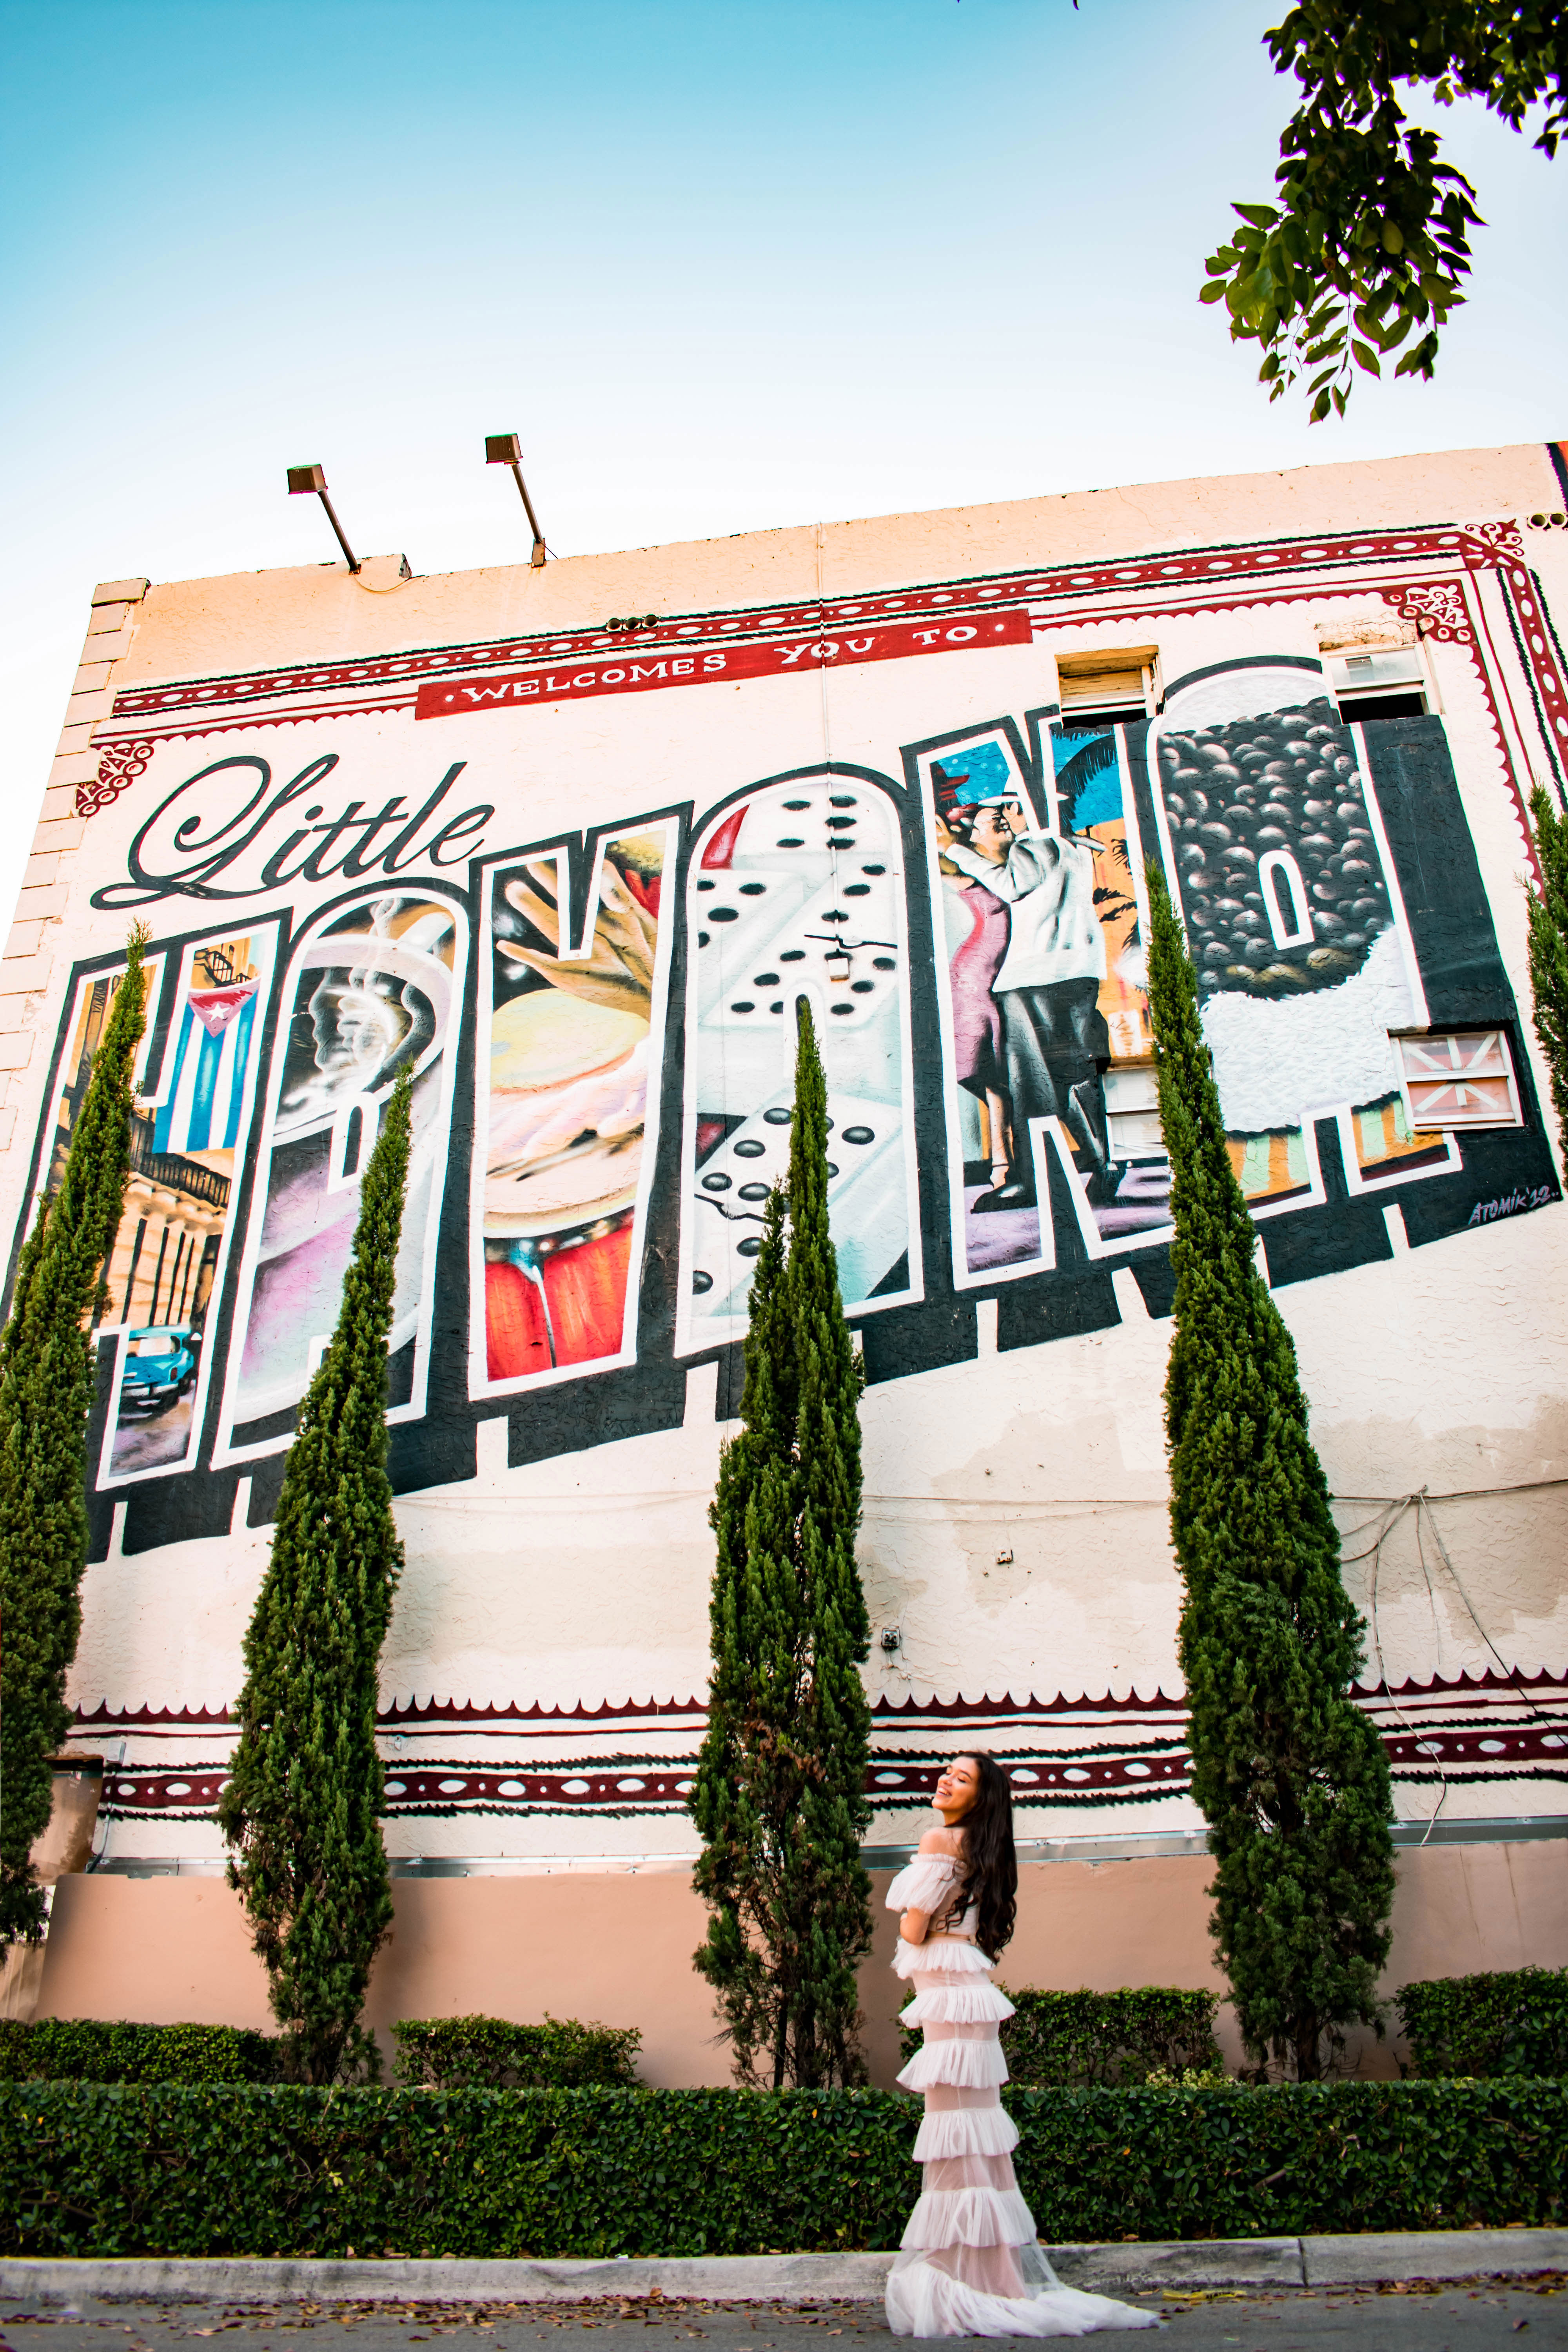 Eva Phan of Eva Darling little havana miami florida instagrammable welcome to little havana mural portia and scarlett white ruffle set prom dress newyorkdress where to go miami travel guide calle ocho luxury travel blogger